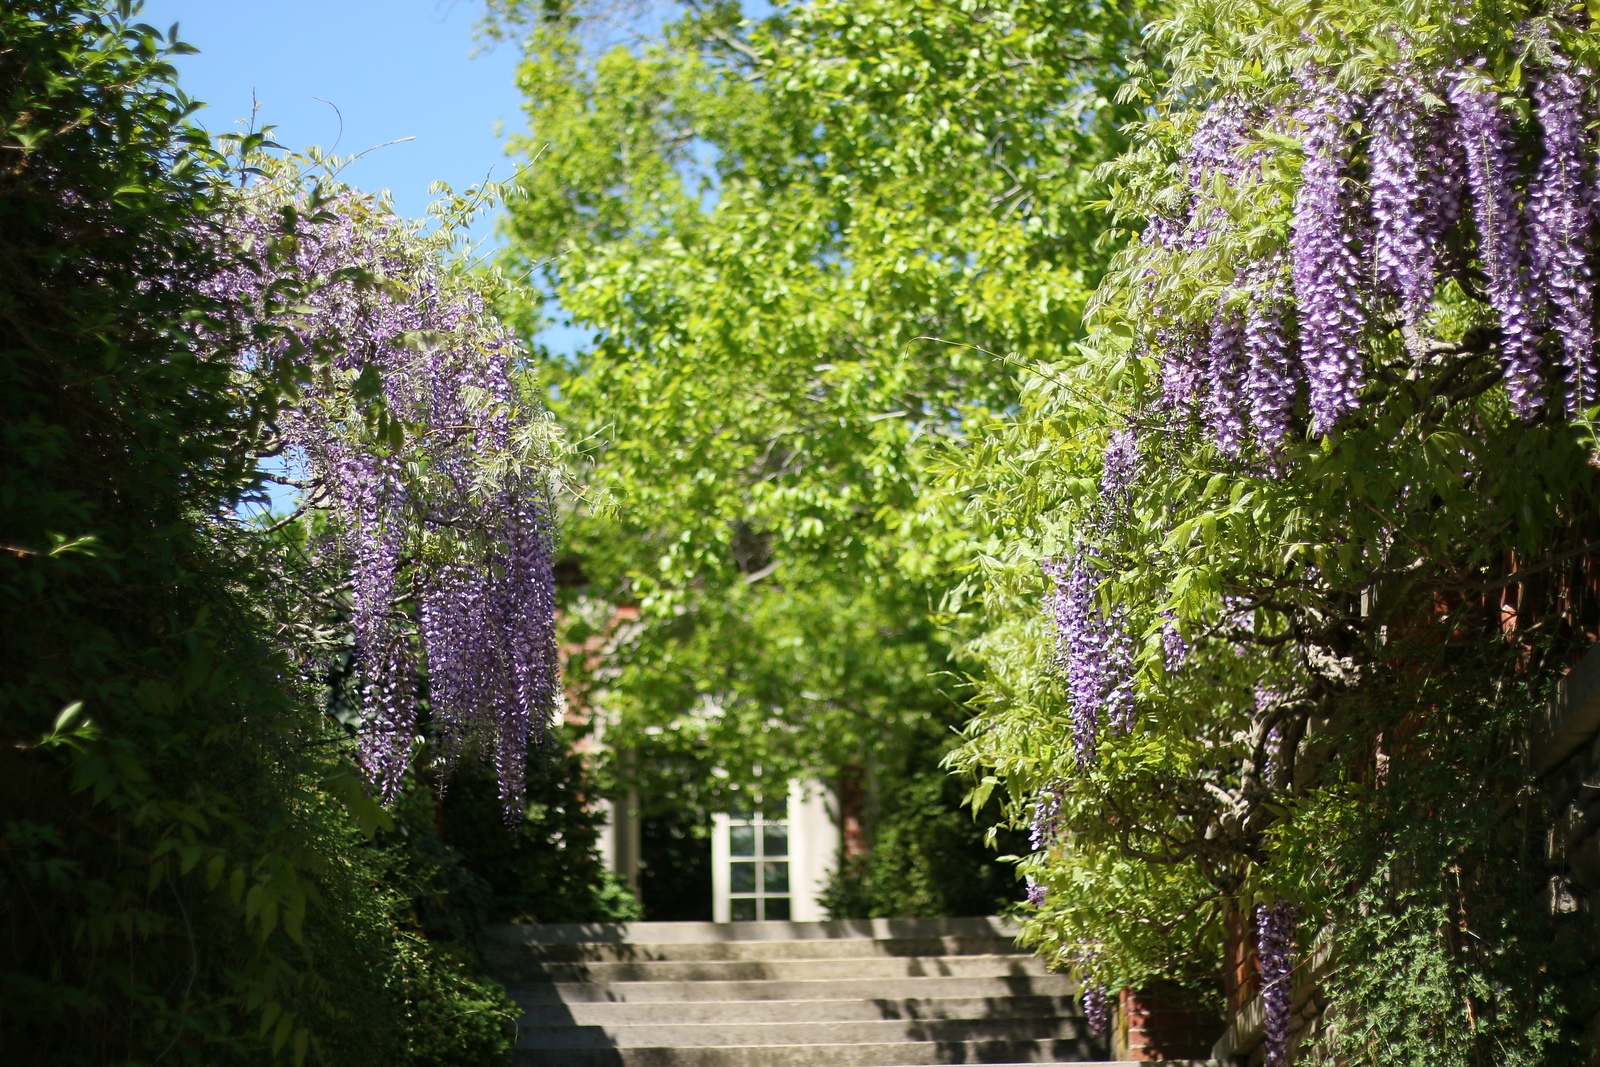 Wisteria by the Urn Terrace looking toward the Orangery